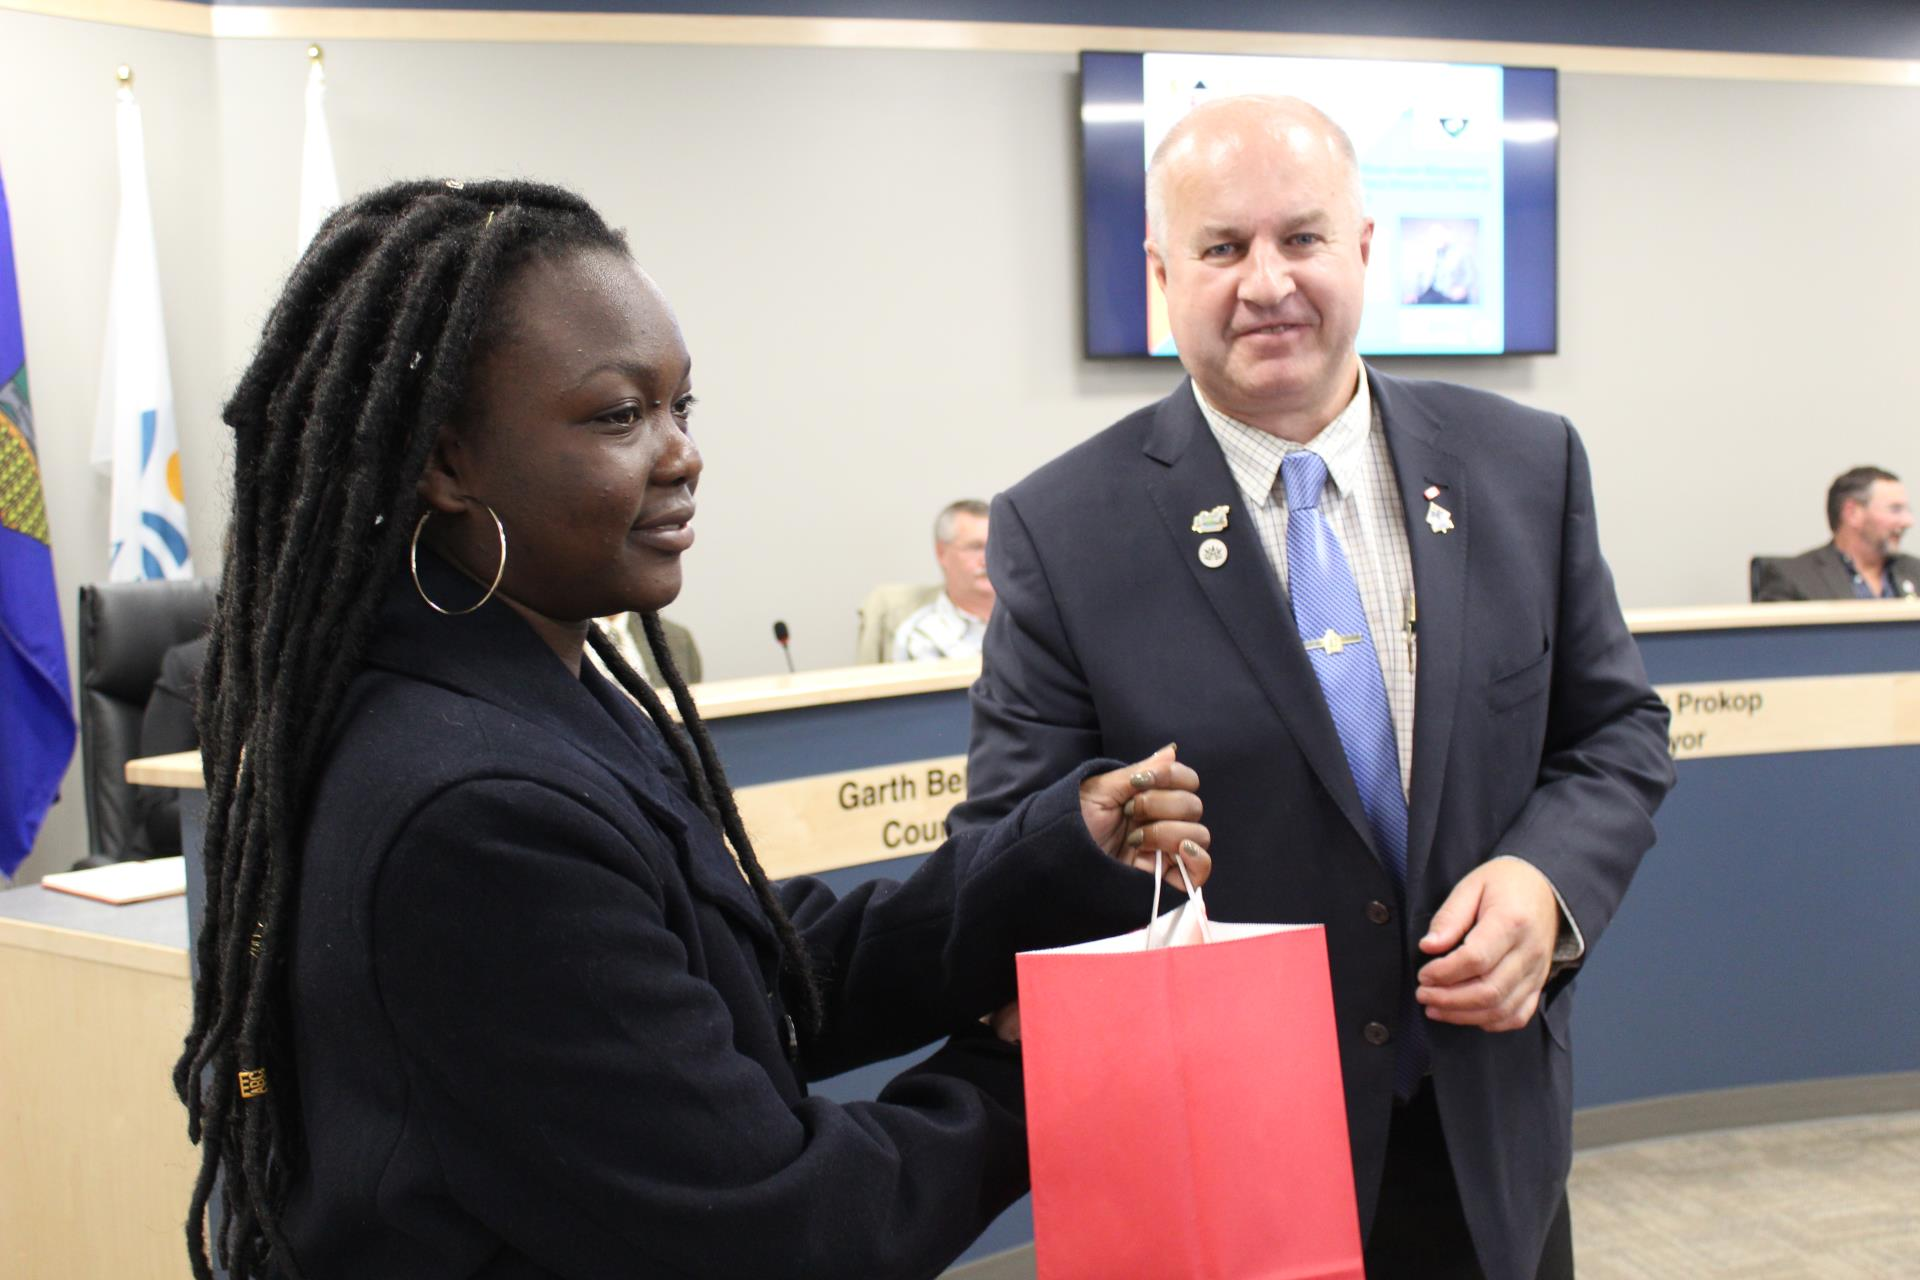 Mayor Prokop Presents a Gift to Ms. Akinyi